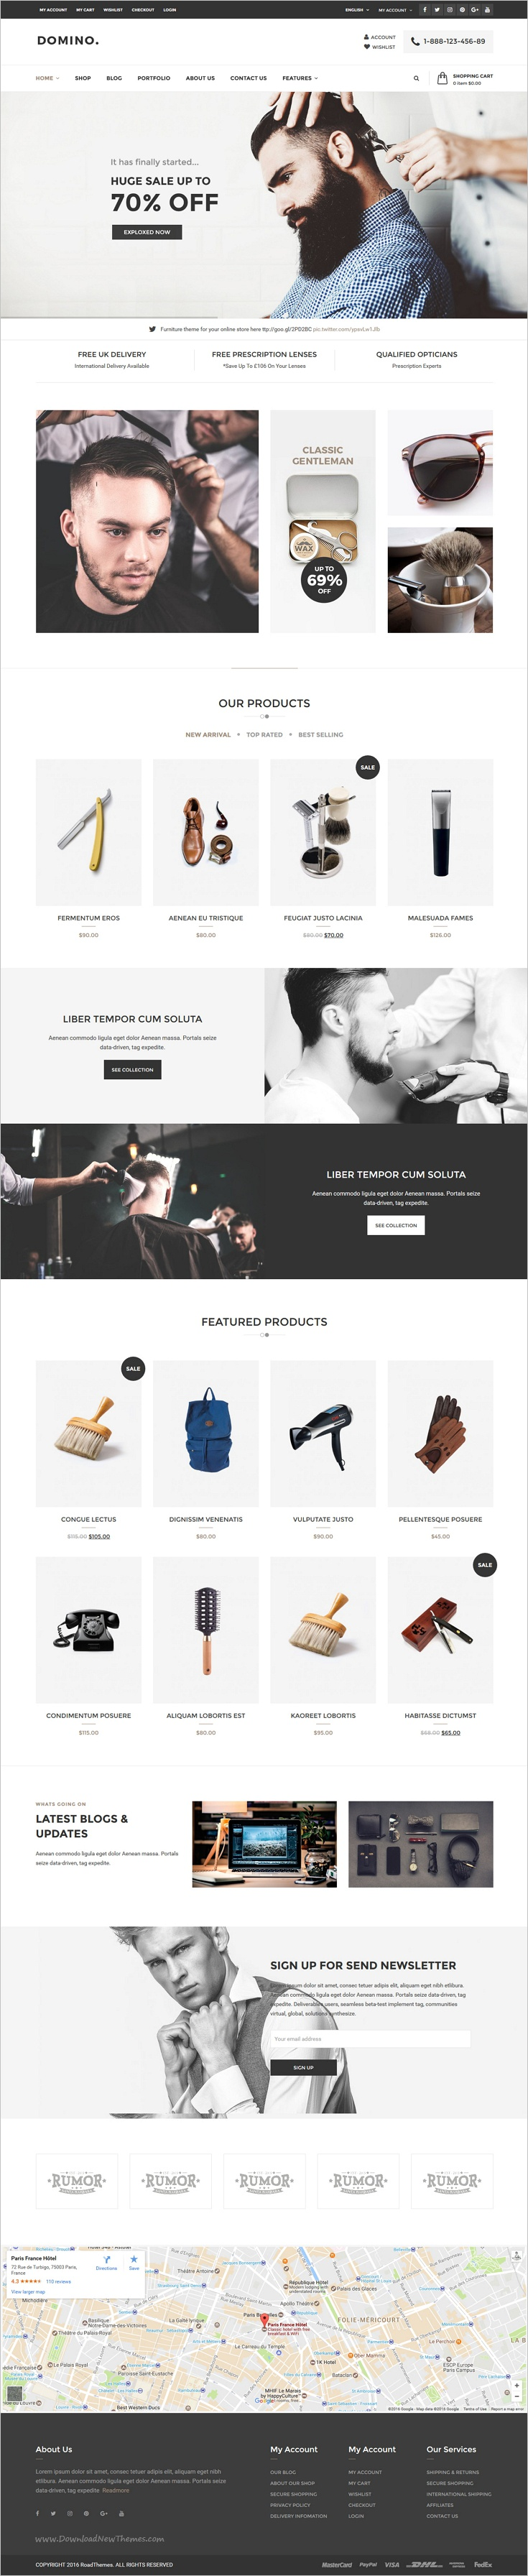 Gallery Domino   Fashion Responsive WordPress Theme is free HD wallpaper.